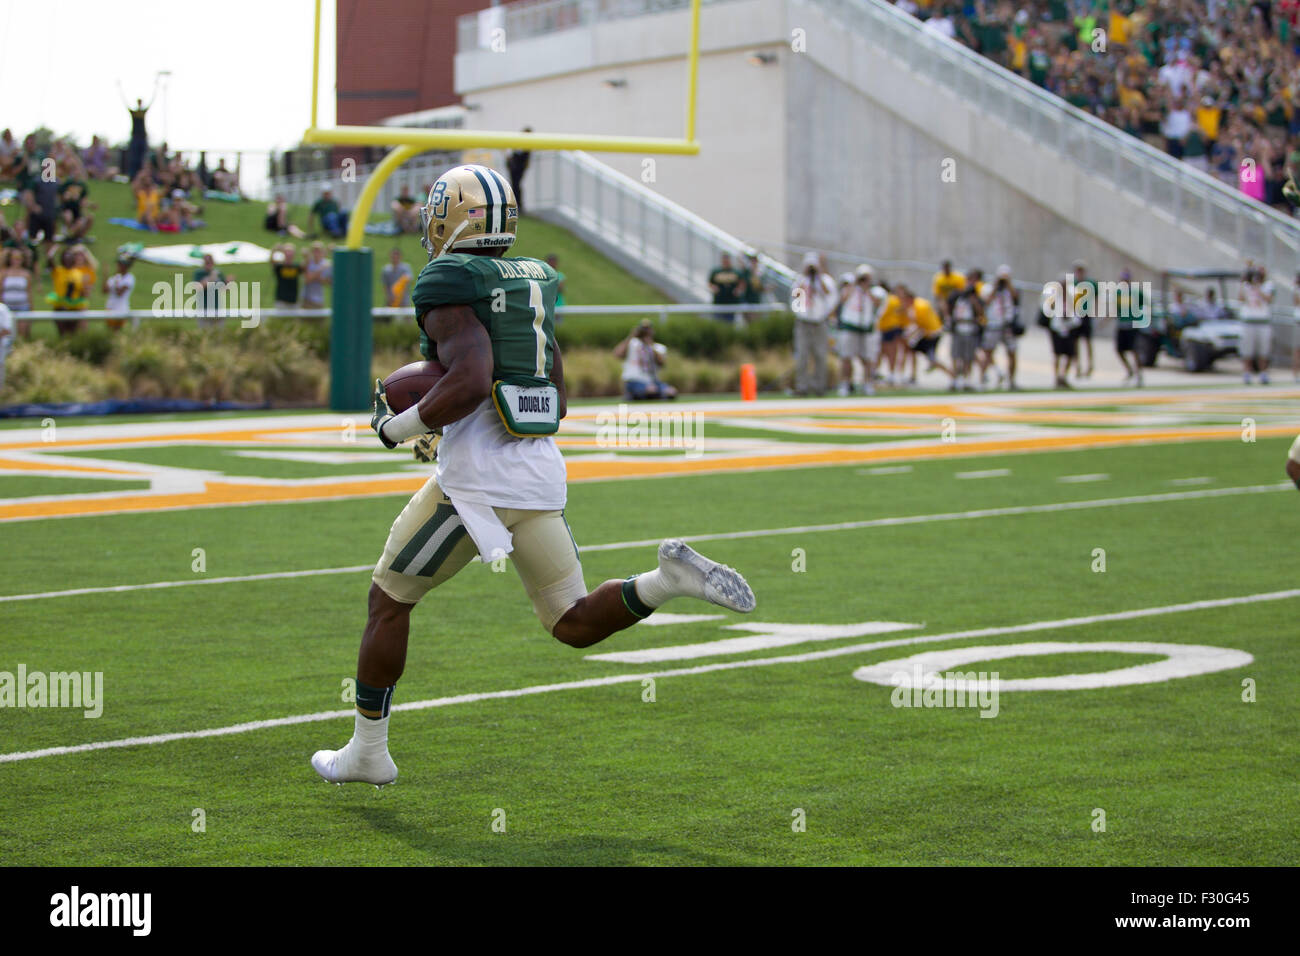 Waco, Texas, USA. 26th Sep, 2015. Baylor Bears wide receiver Corey Coleman (1) streaks down side lines for touchdown Stock Photo